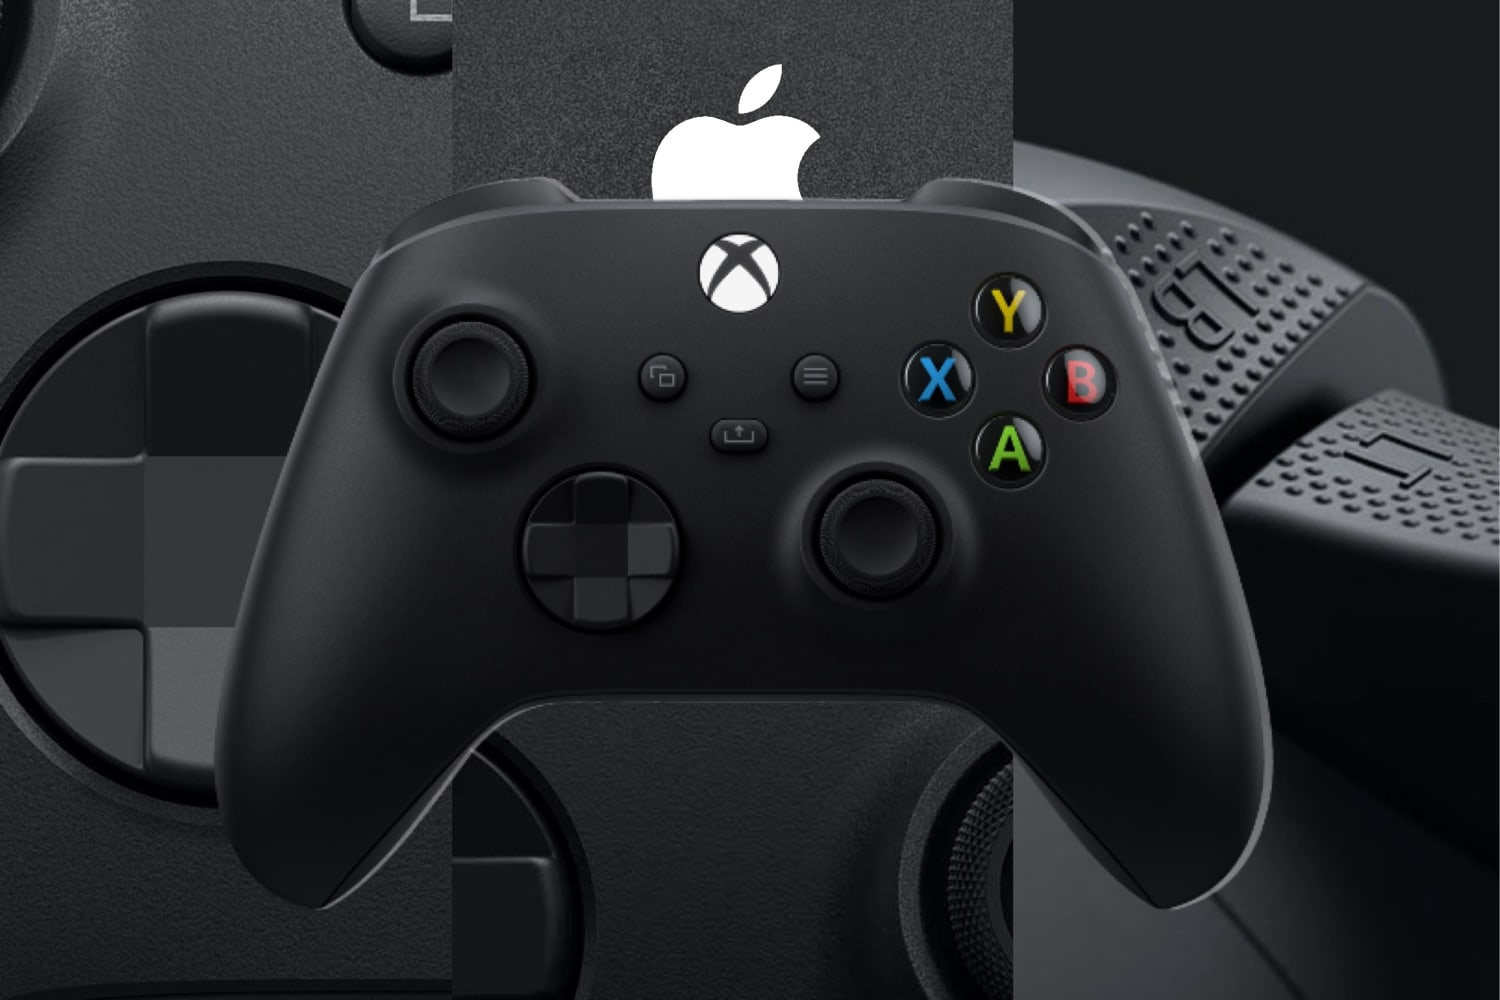 microsoft-s-xbox-series-x-controller-will-soon-work-with-apple-devices-20201120-1